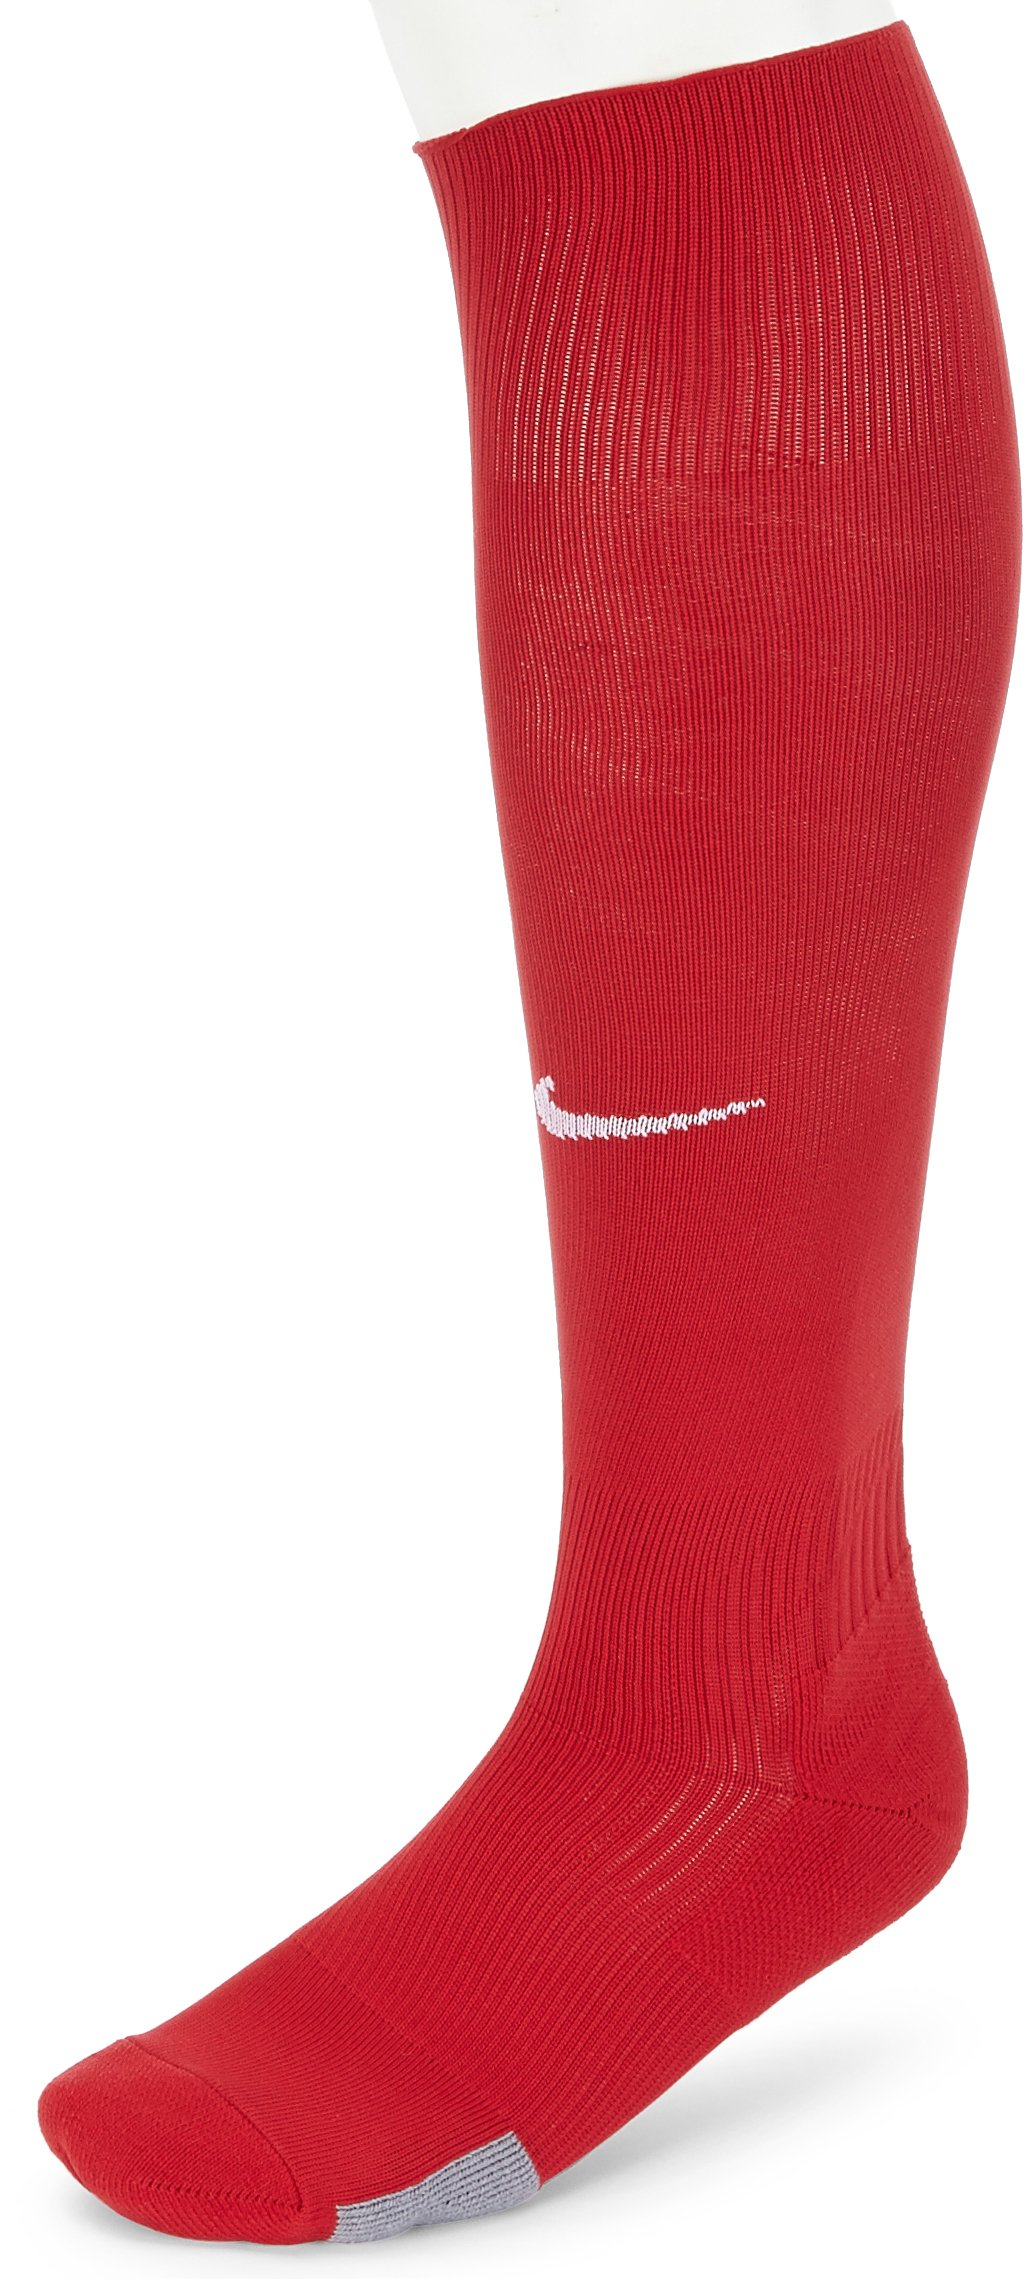 Nike Park IV Sock, Red, Large by Nike